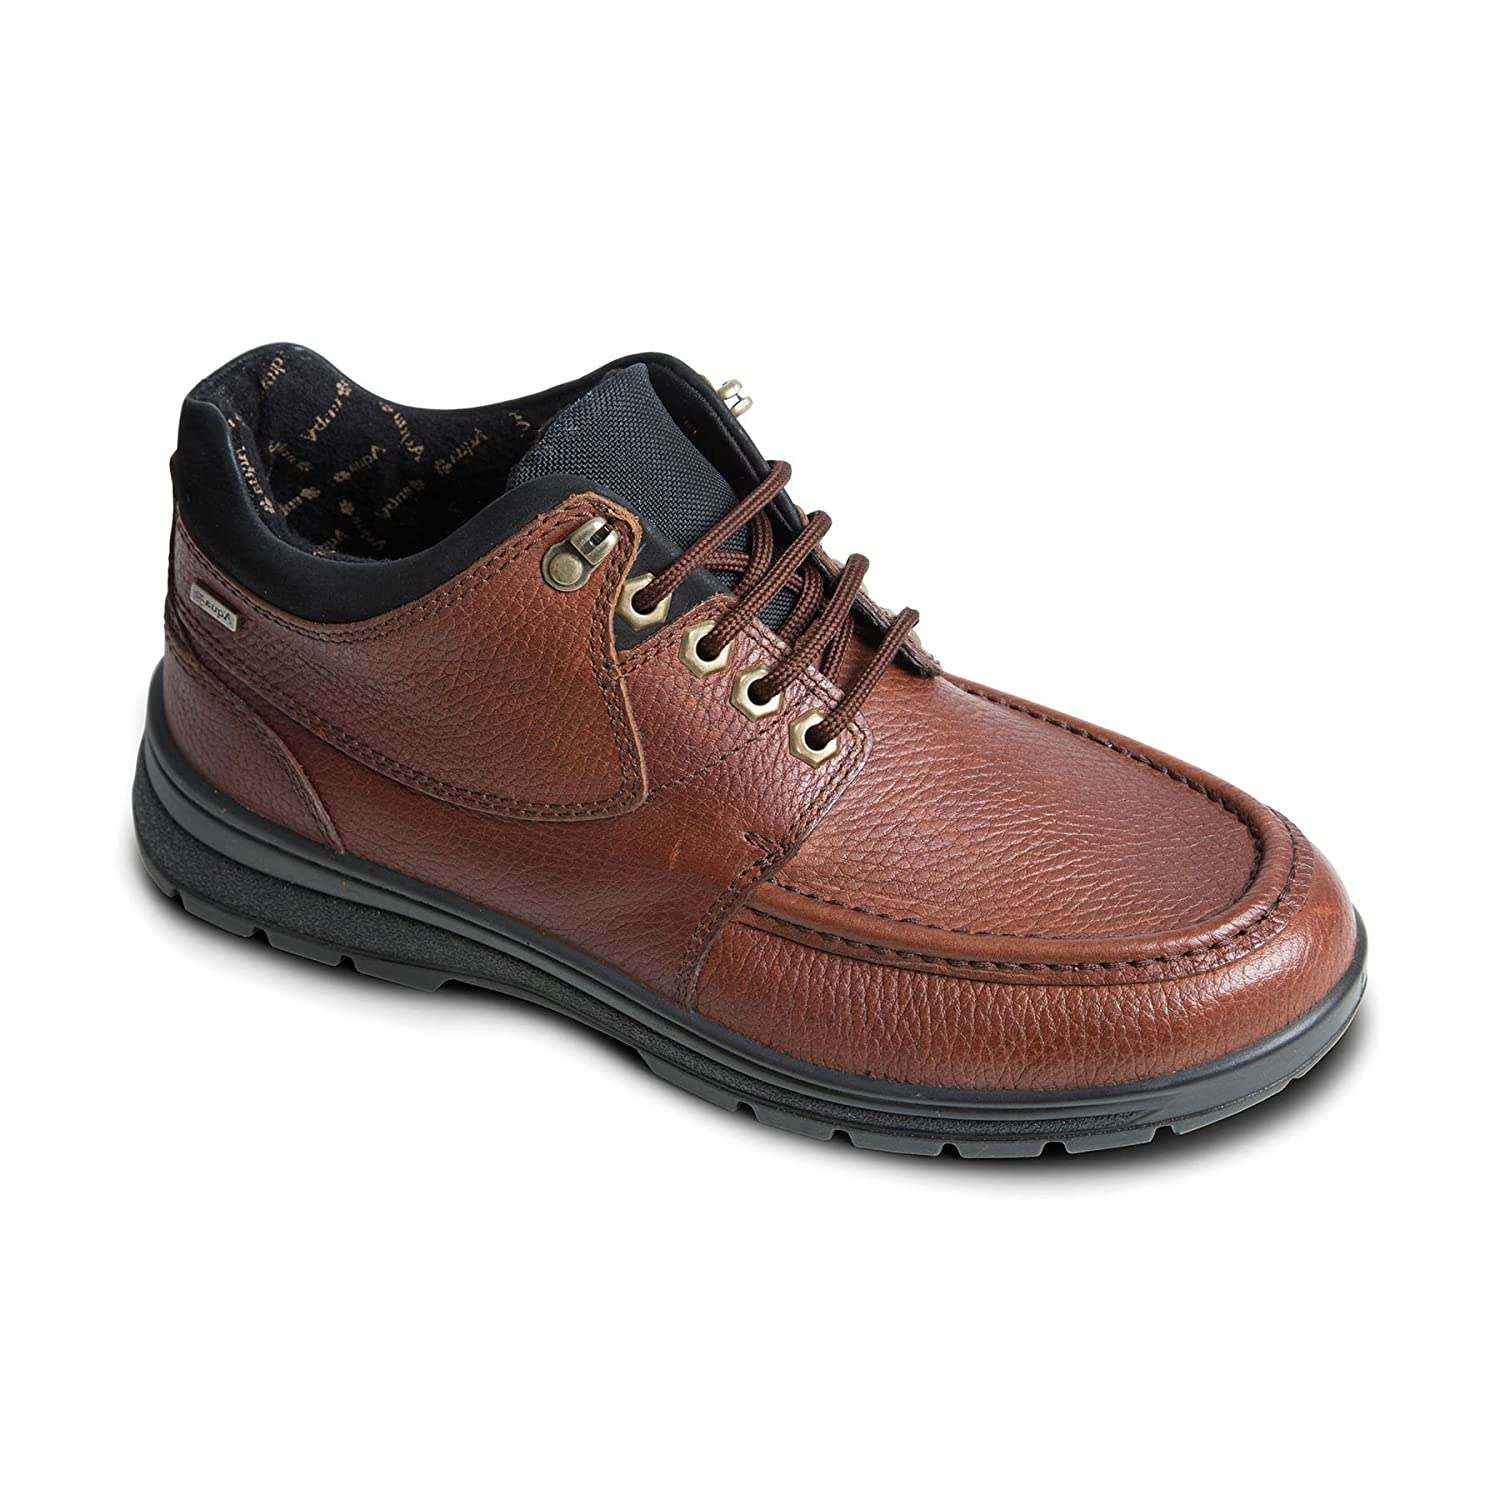 Tan Cog Camel Padders Men's Waterproof Leather Boot 'Crest'   Made in Britain   Dual Fit System   Extra Wide G-H Fit  35mm Heel Height   Free Footcare UK shoes Horn